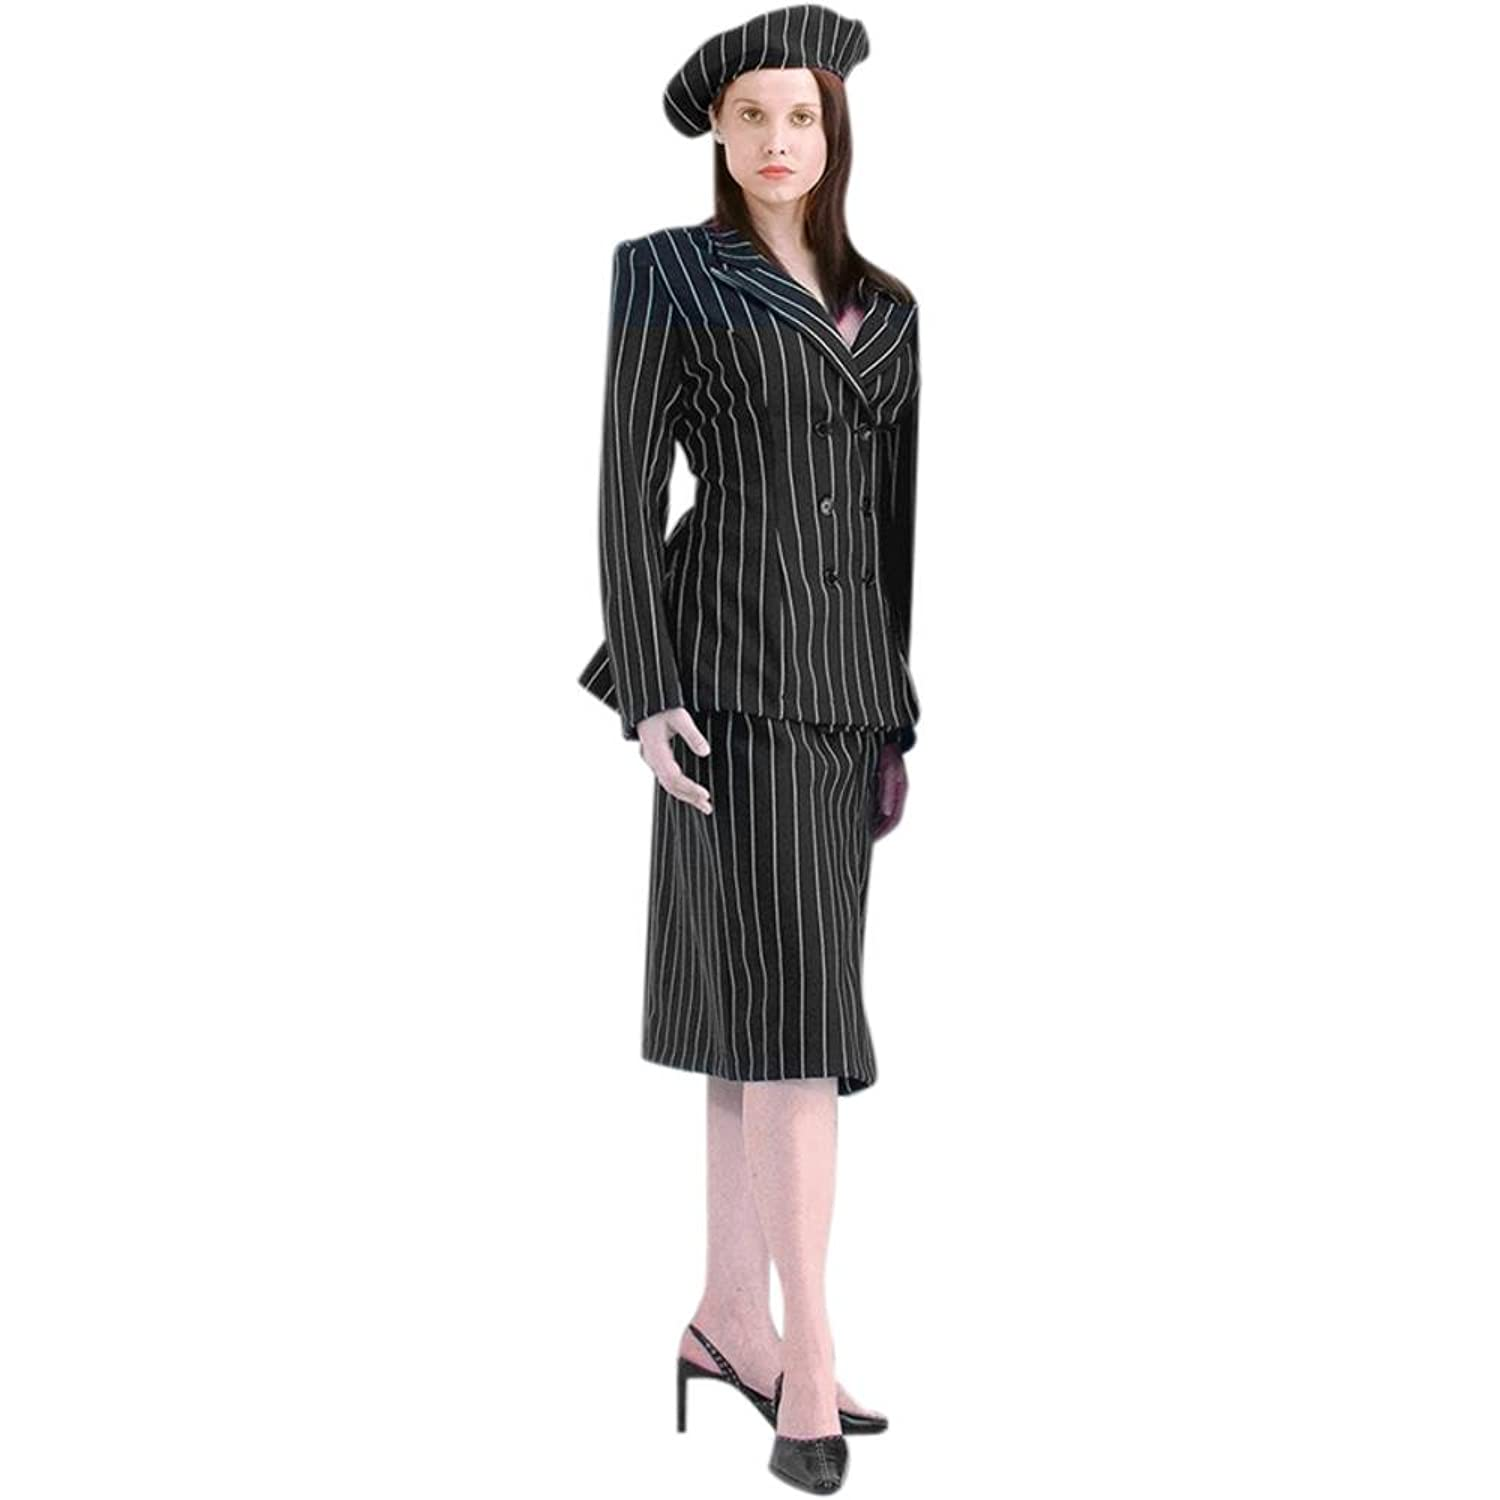 Adult Deluxe Bonnie and Clyde Costume